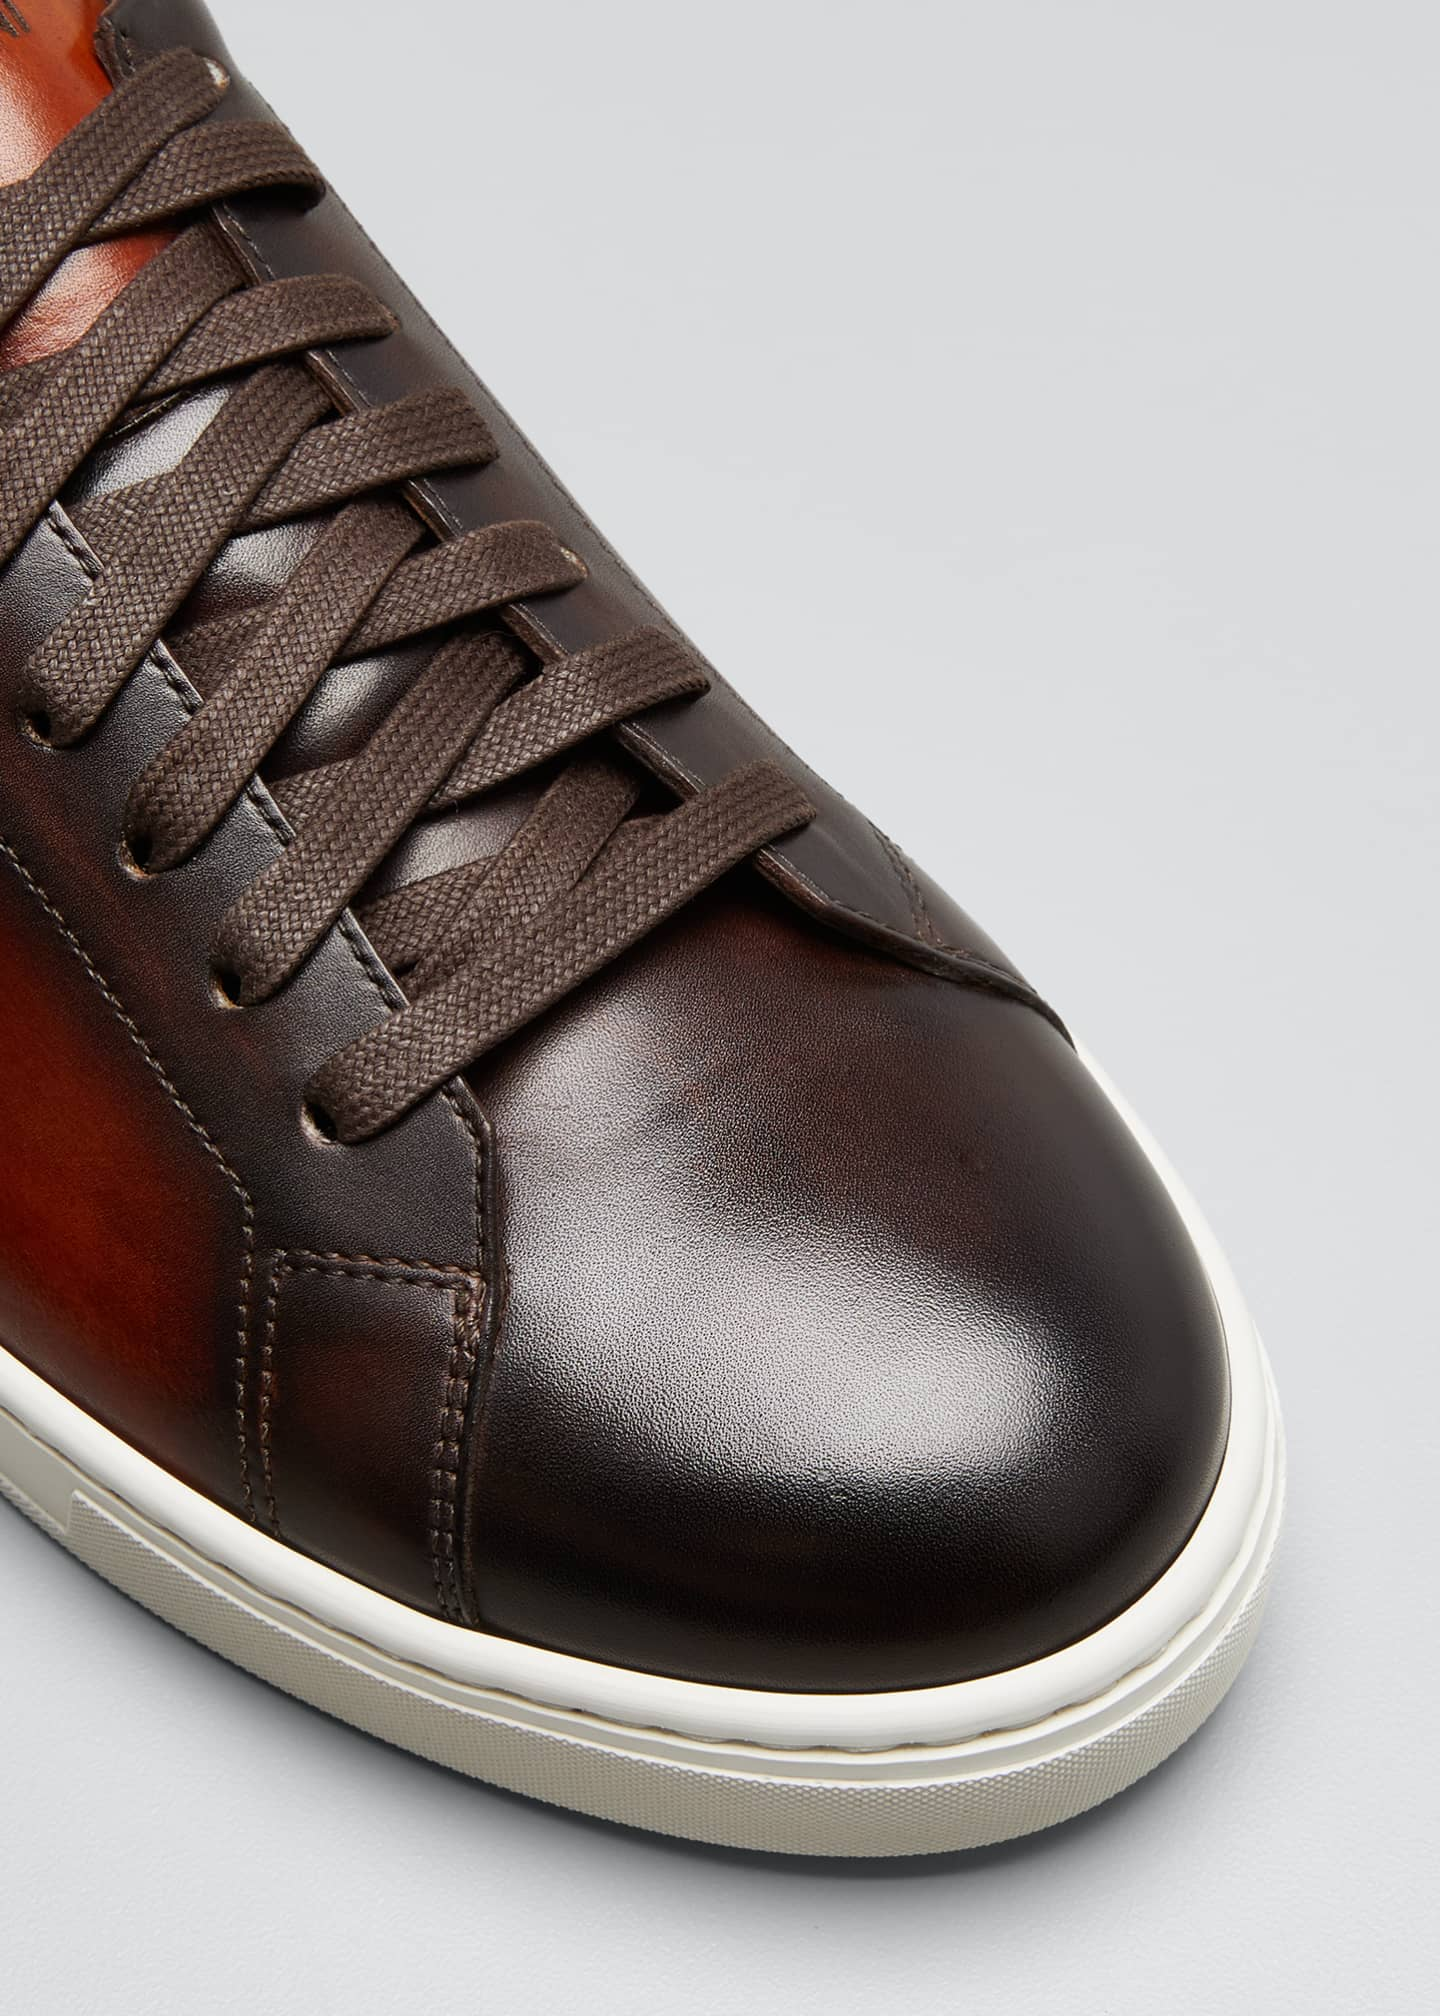 Image 3 of 3: Men's Ottawa Burnished Leather Sneakers